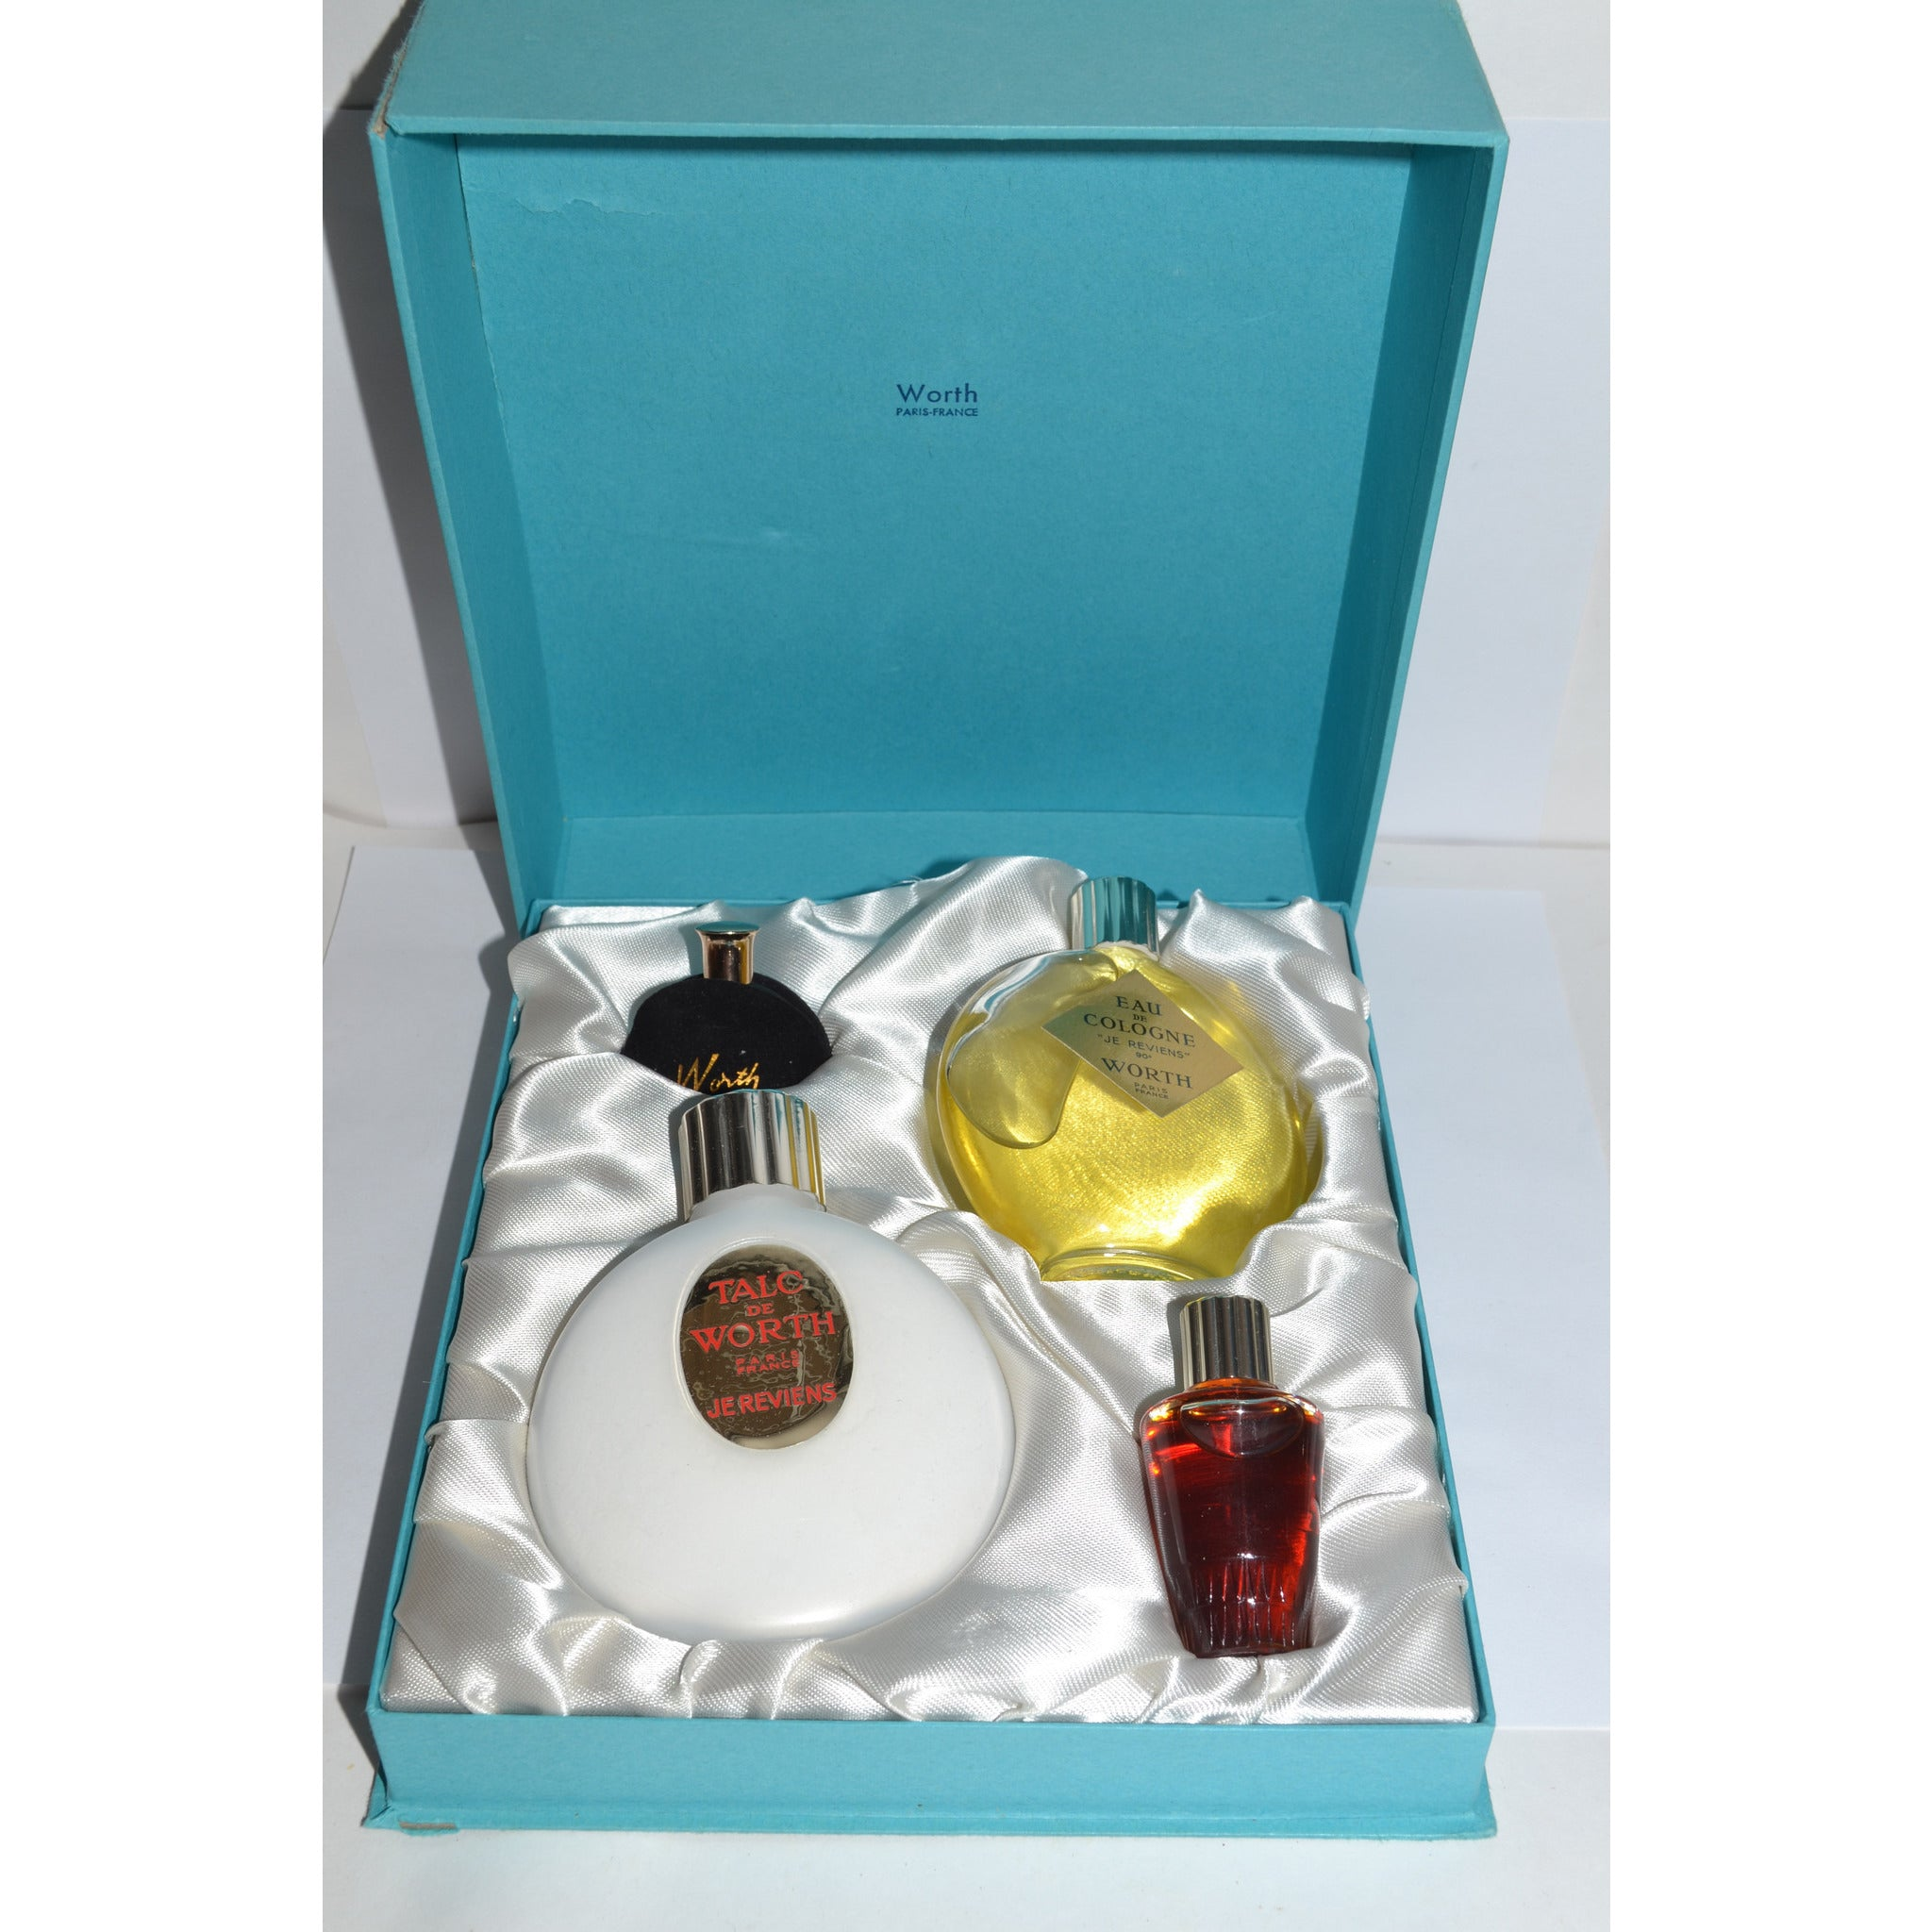 Vintage Je Reviens Perfume Set By Worth